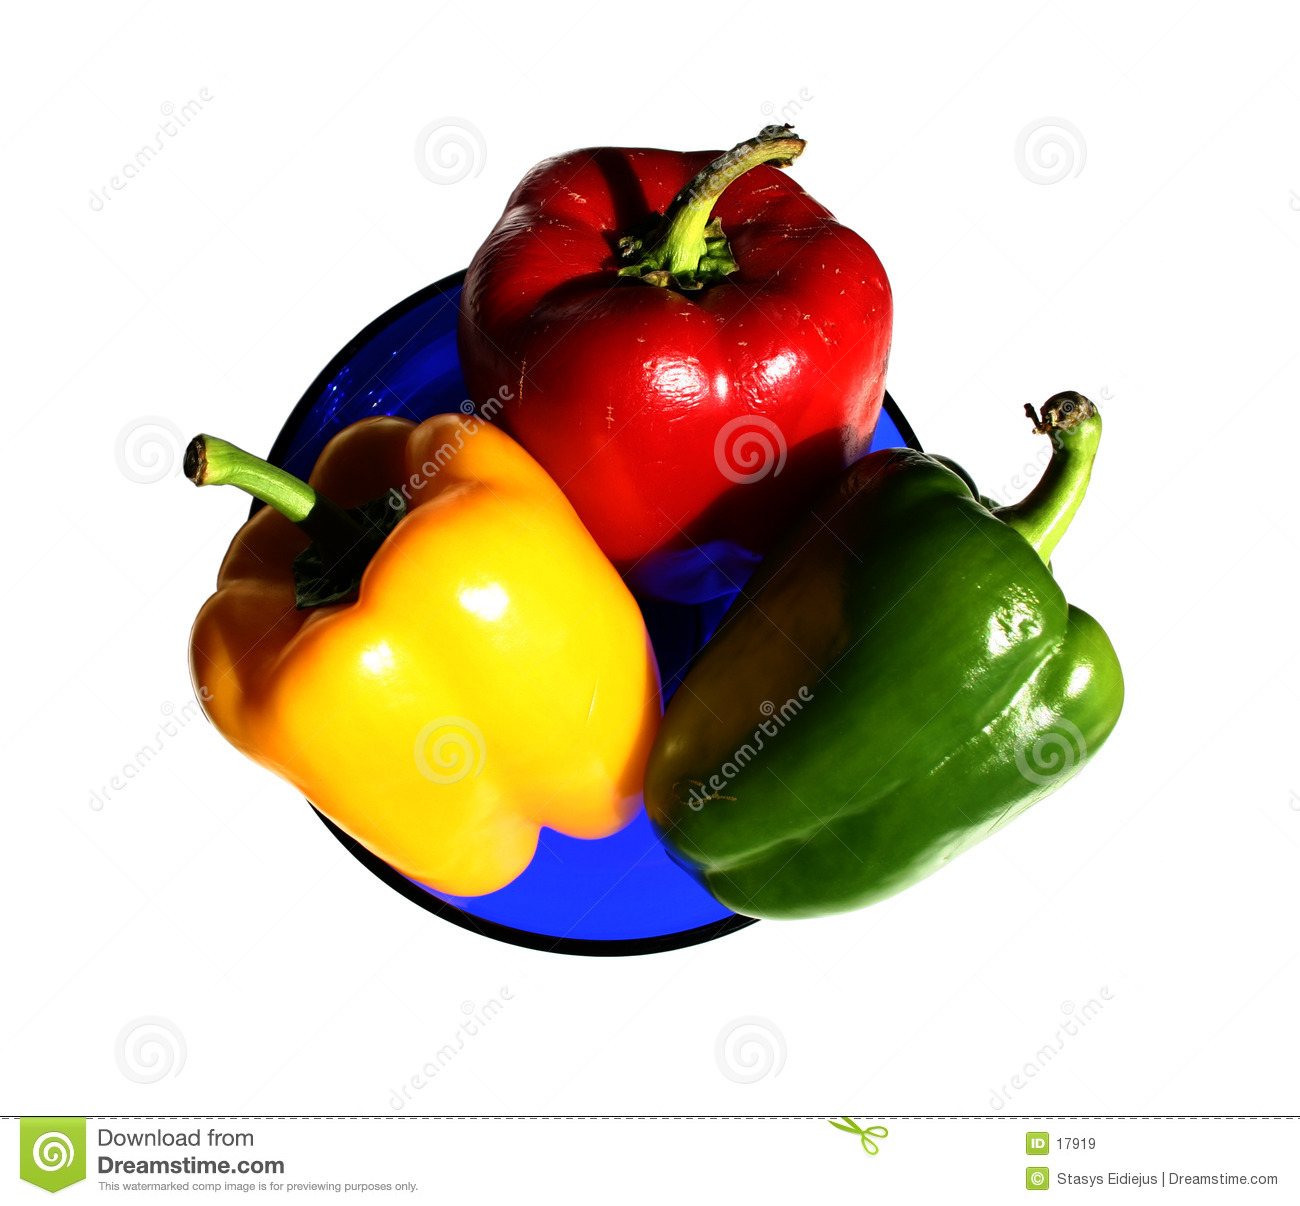 Peppers in the plate, isolated